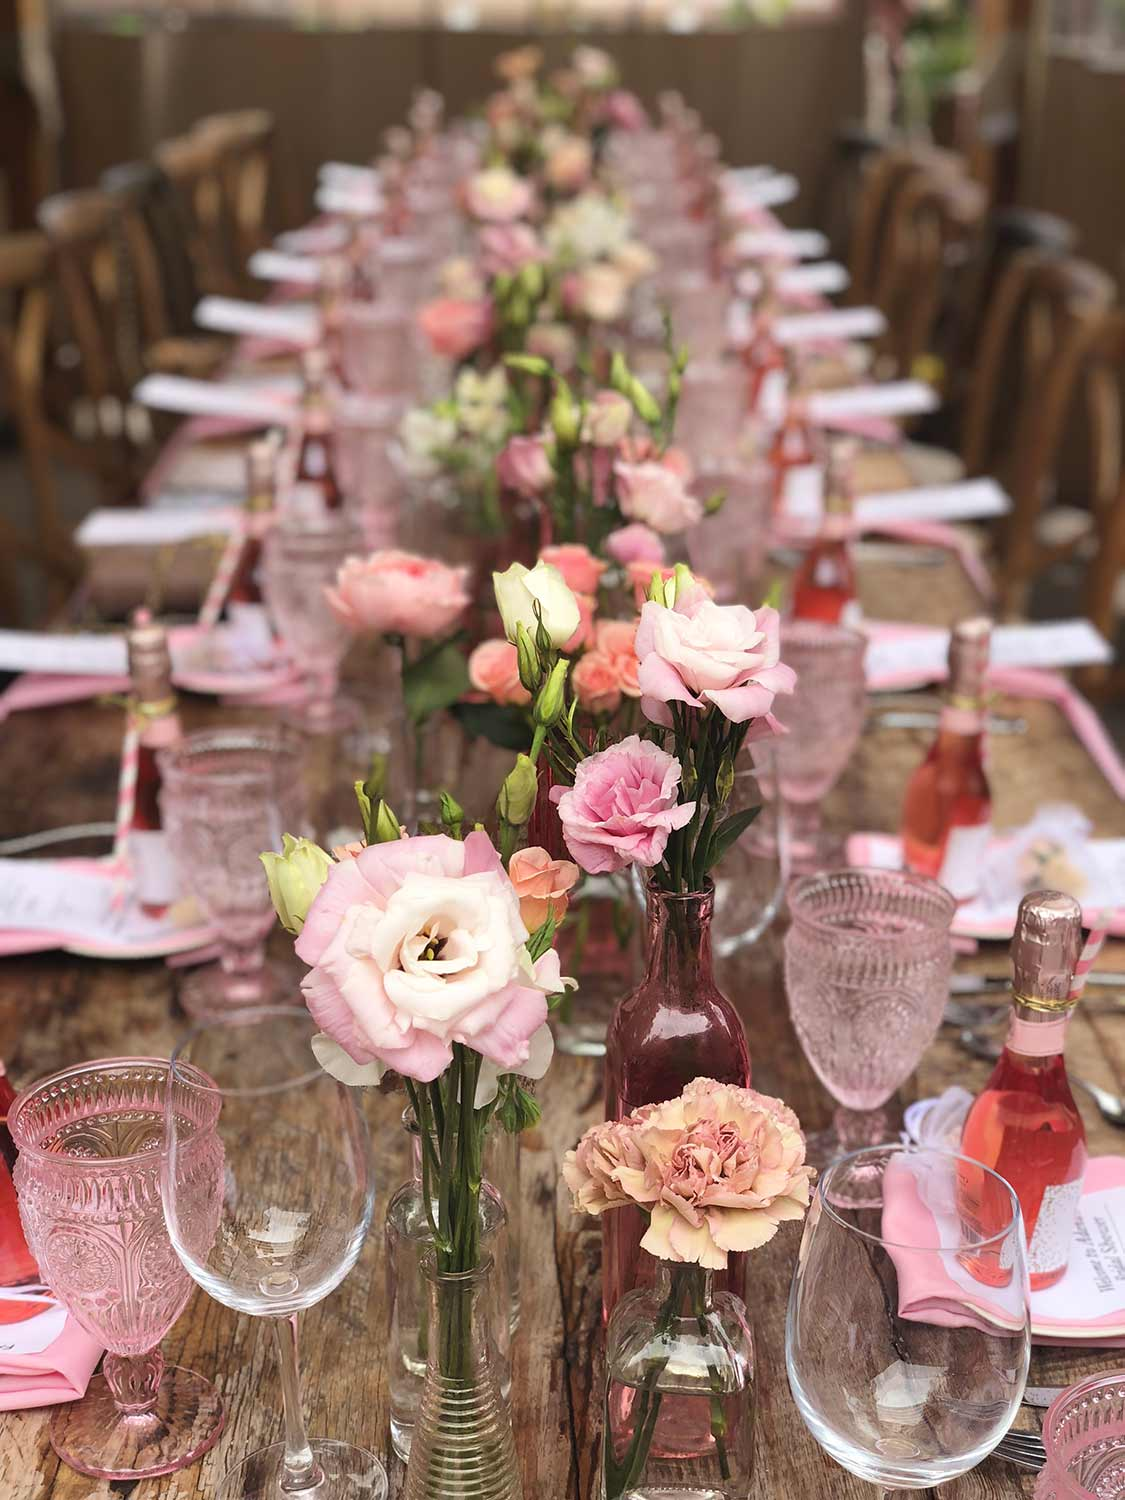 An image of a dinner table with pink glasses, small rosa bottles and pink roses in pink vases